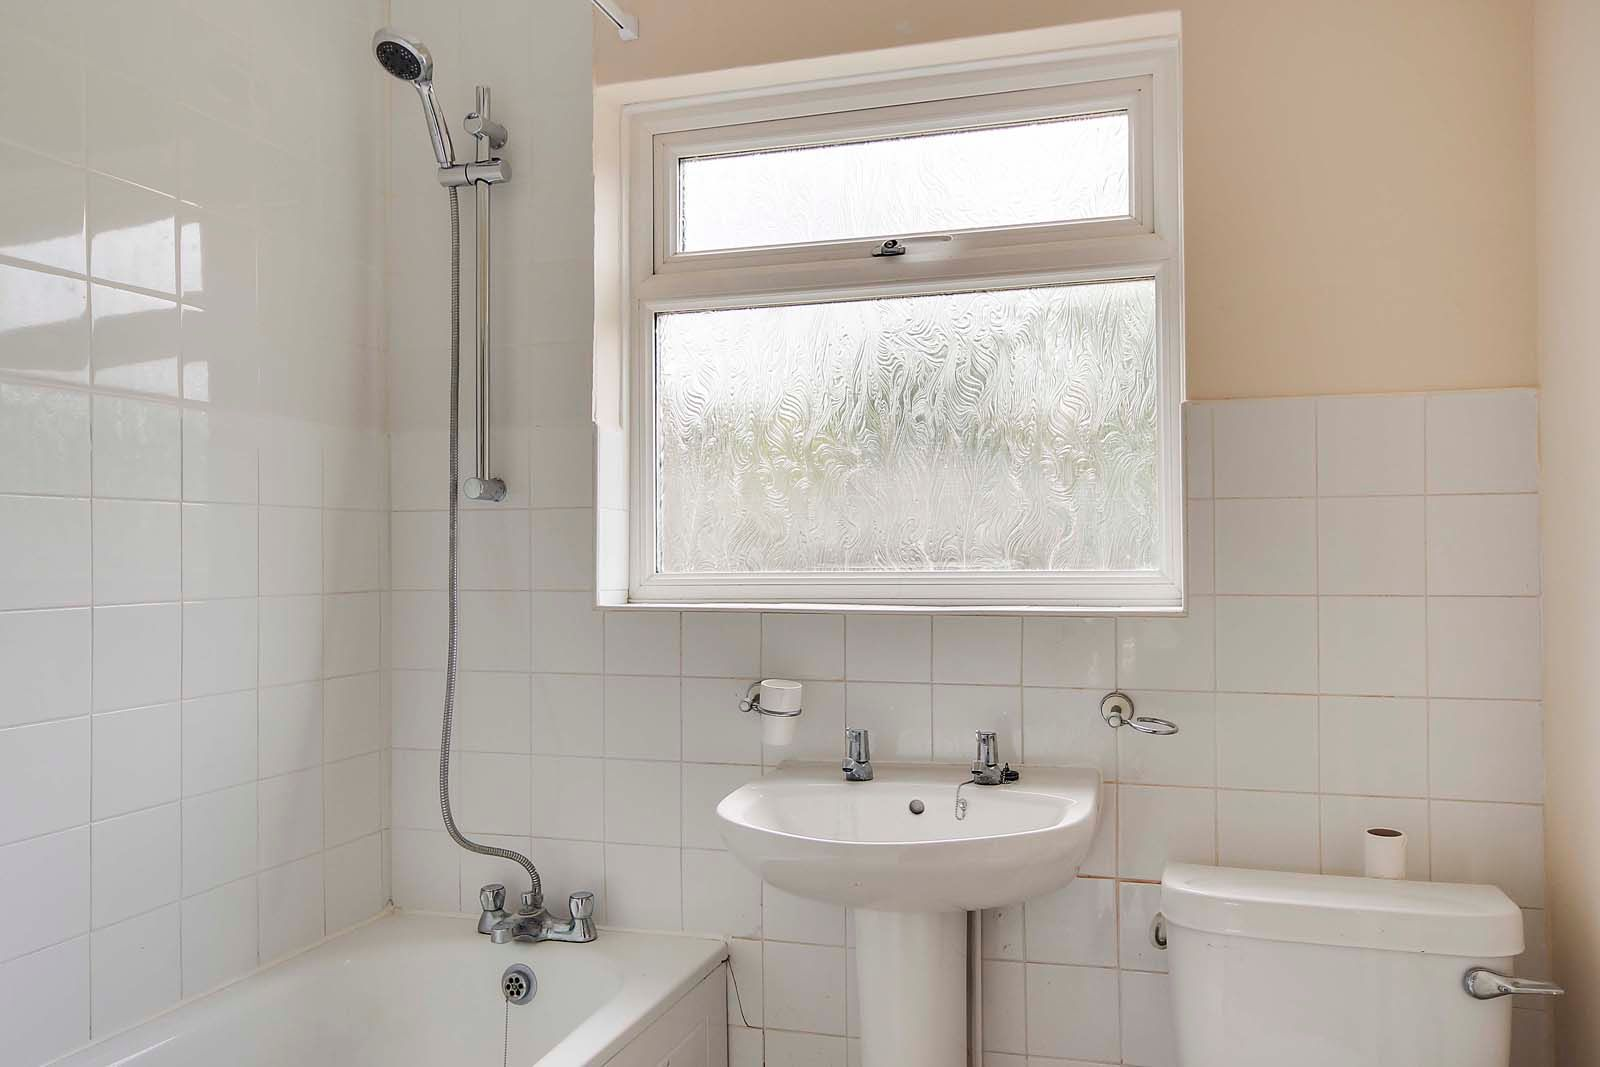 2 bed Apartment to rent in East Preston - Bathroom (Property Image 6)